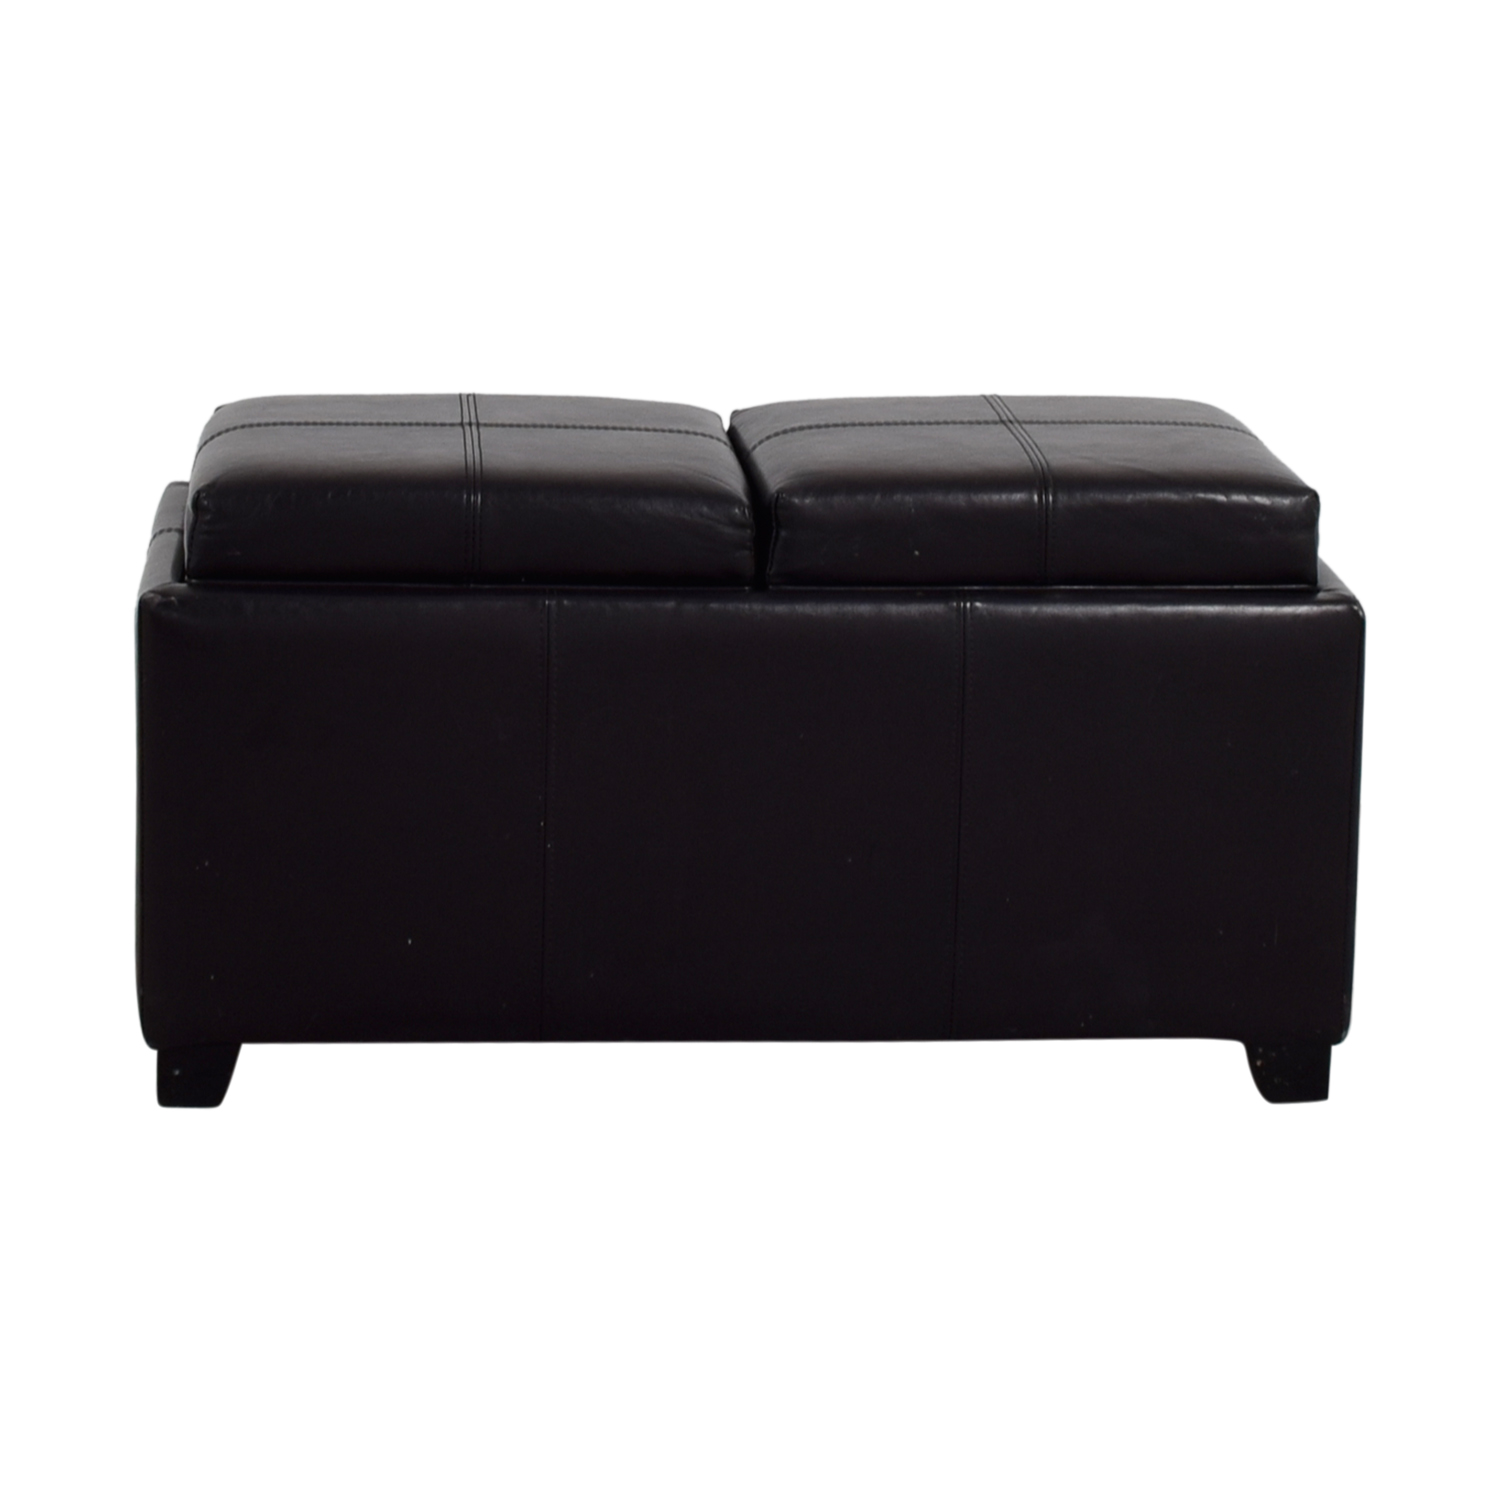 Brown Leather Ottoman with Storage on sale